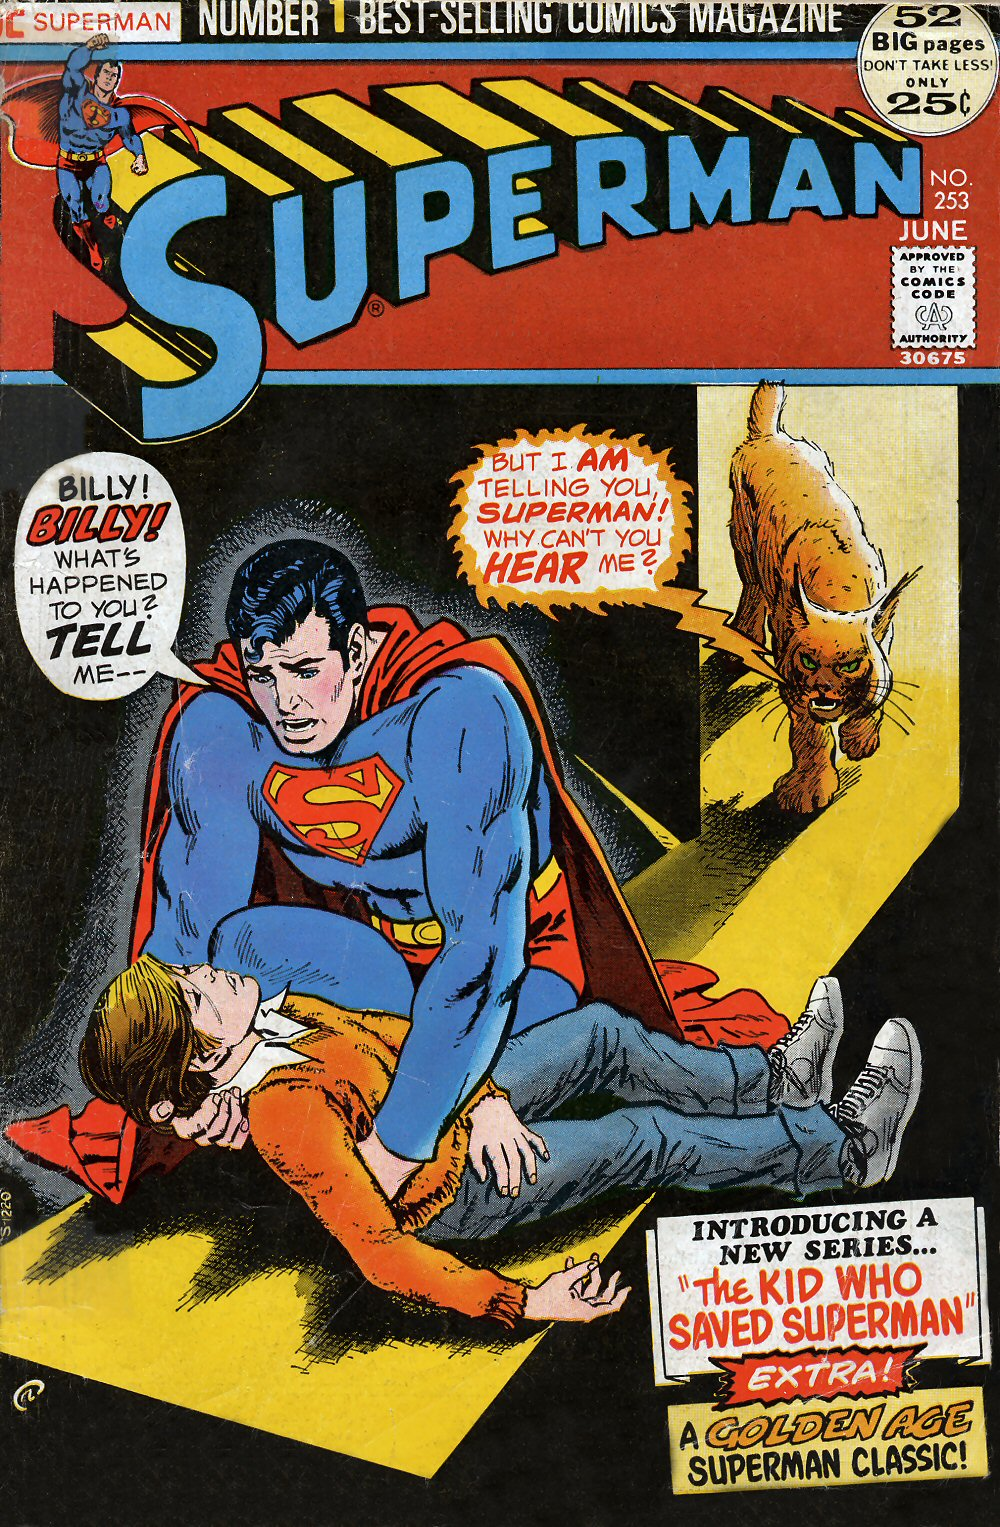 Superman (1939) #253, cover by Nick Cardy.